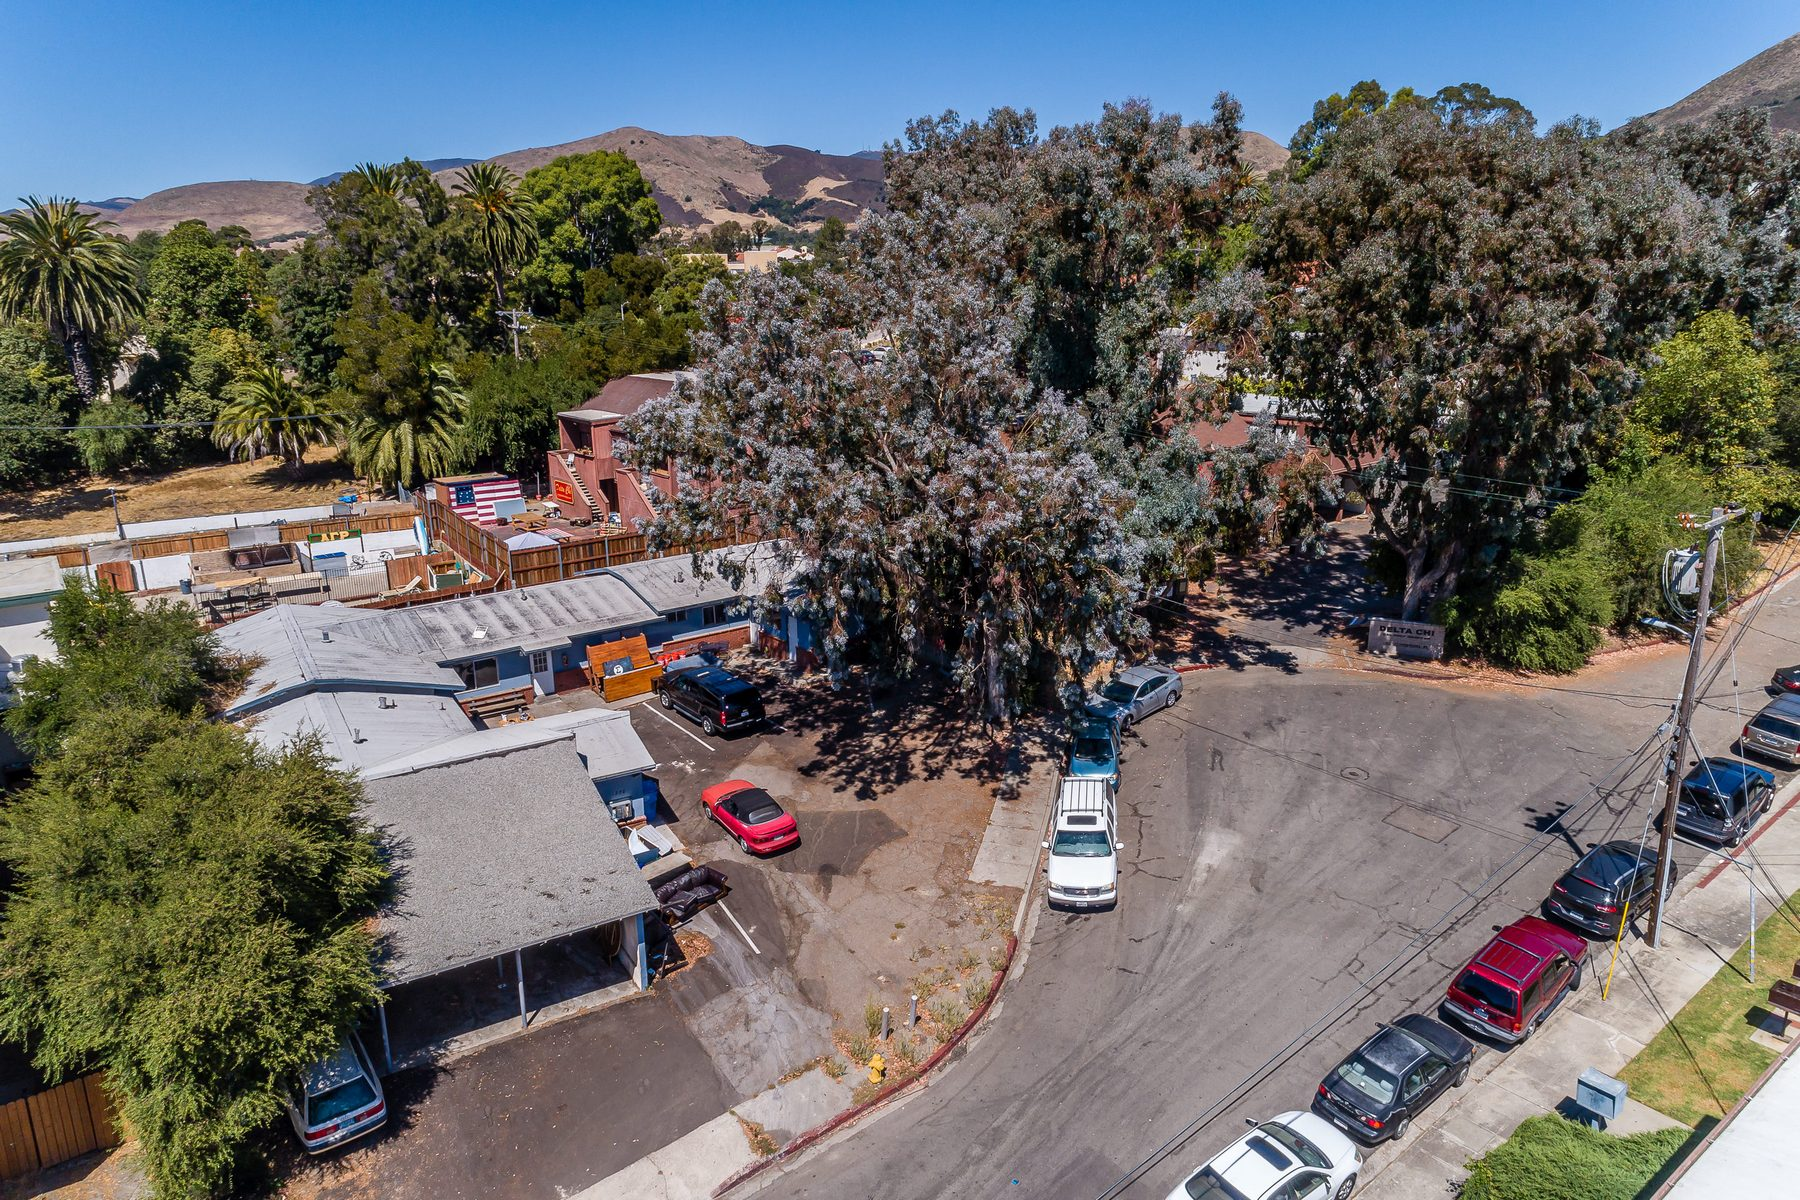 Multi-Family Homes for Sale at Investment Property Near Cal Poly Campus 1230 Monte Vista San Luis Obispo, California 93405 United States